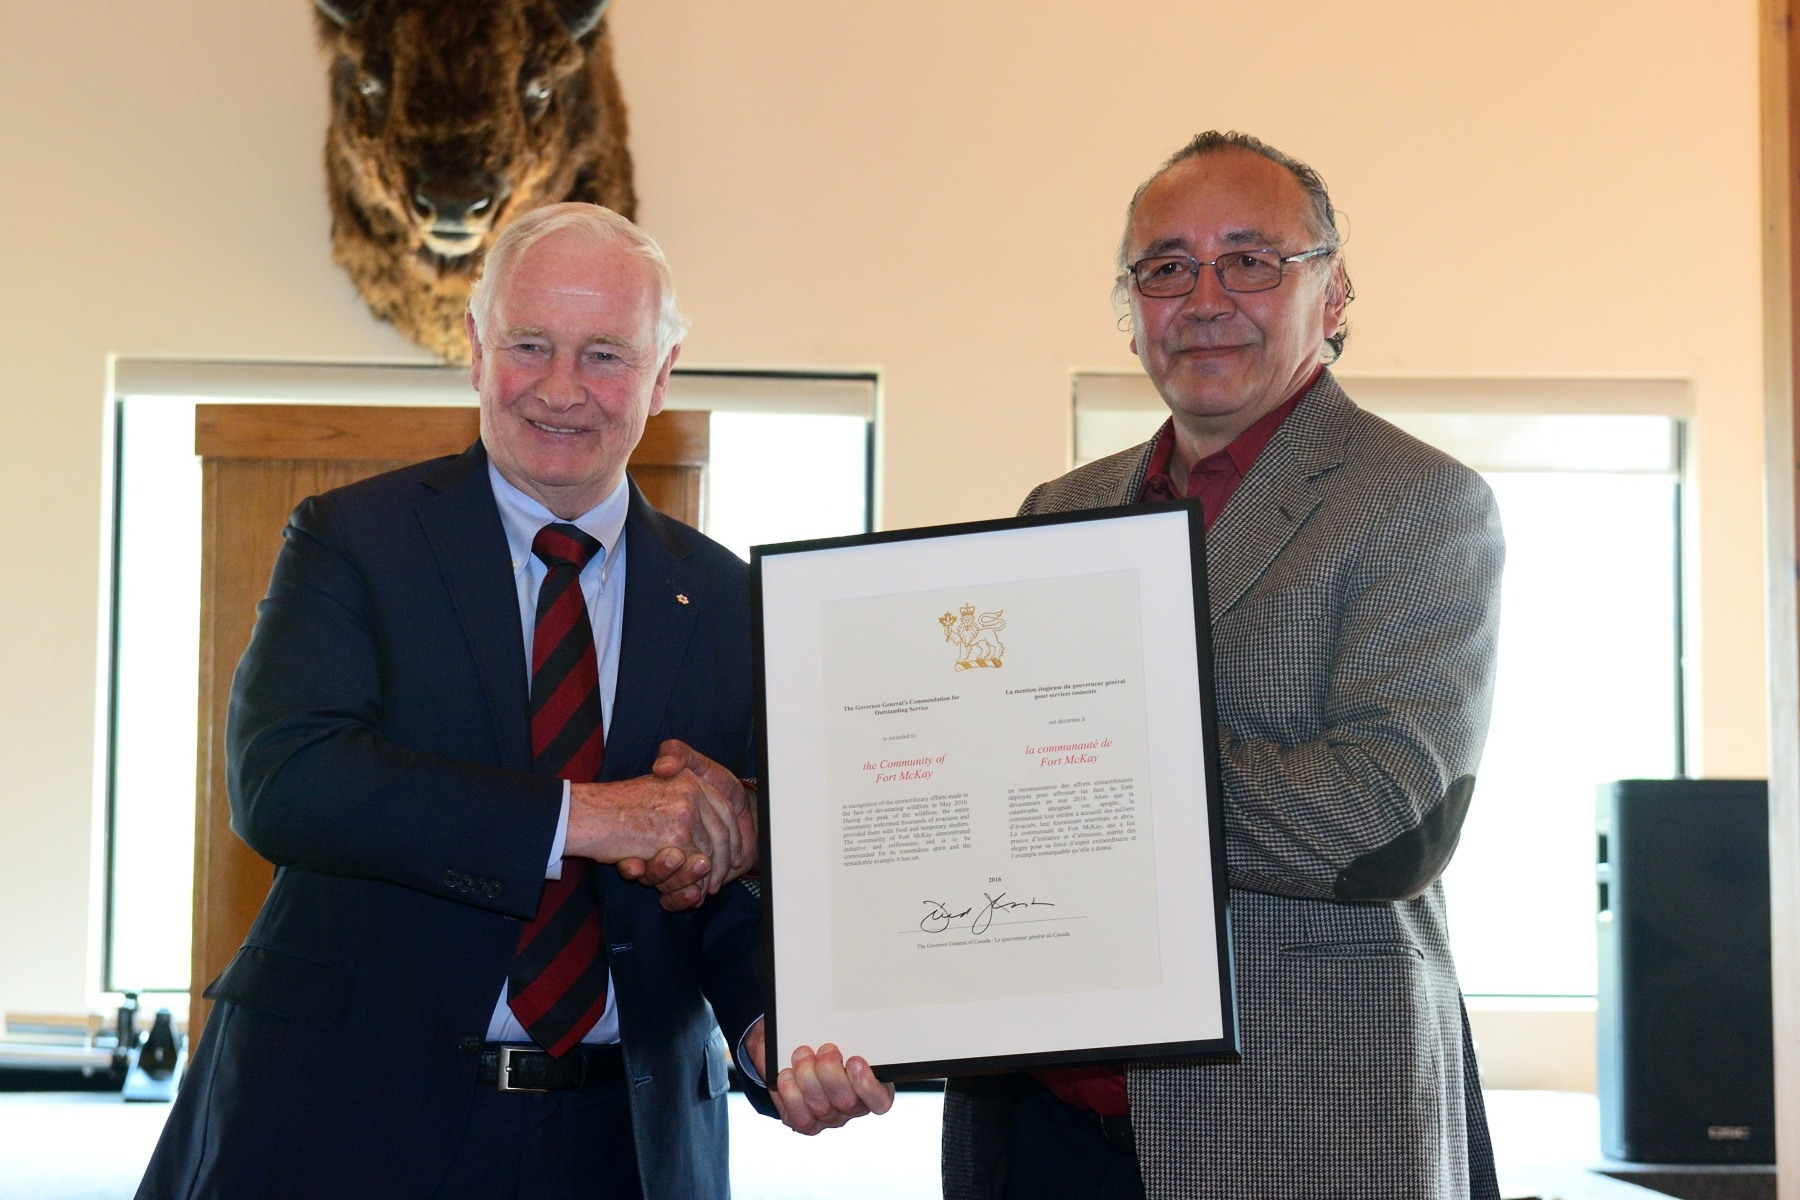 His Excellency presented to the Governor General's Commendation for Outstanding Service to Fort McKay First Nation Chief Jim Boucher in recognition of the community's extraordinary efforts made in the face of devastating wildfires in May 2016. During the peak of the wildfires, the entire community welcomed thousands of evacuees and provided them with food and temporary shelters.  The community of Fort McKay demonstrated initiative and selflessness, and is to be commended for its tremendous spirit and the remarkable example it has set.